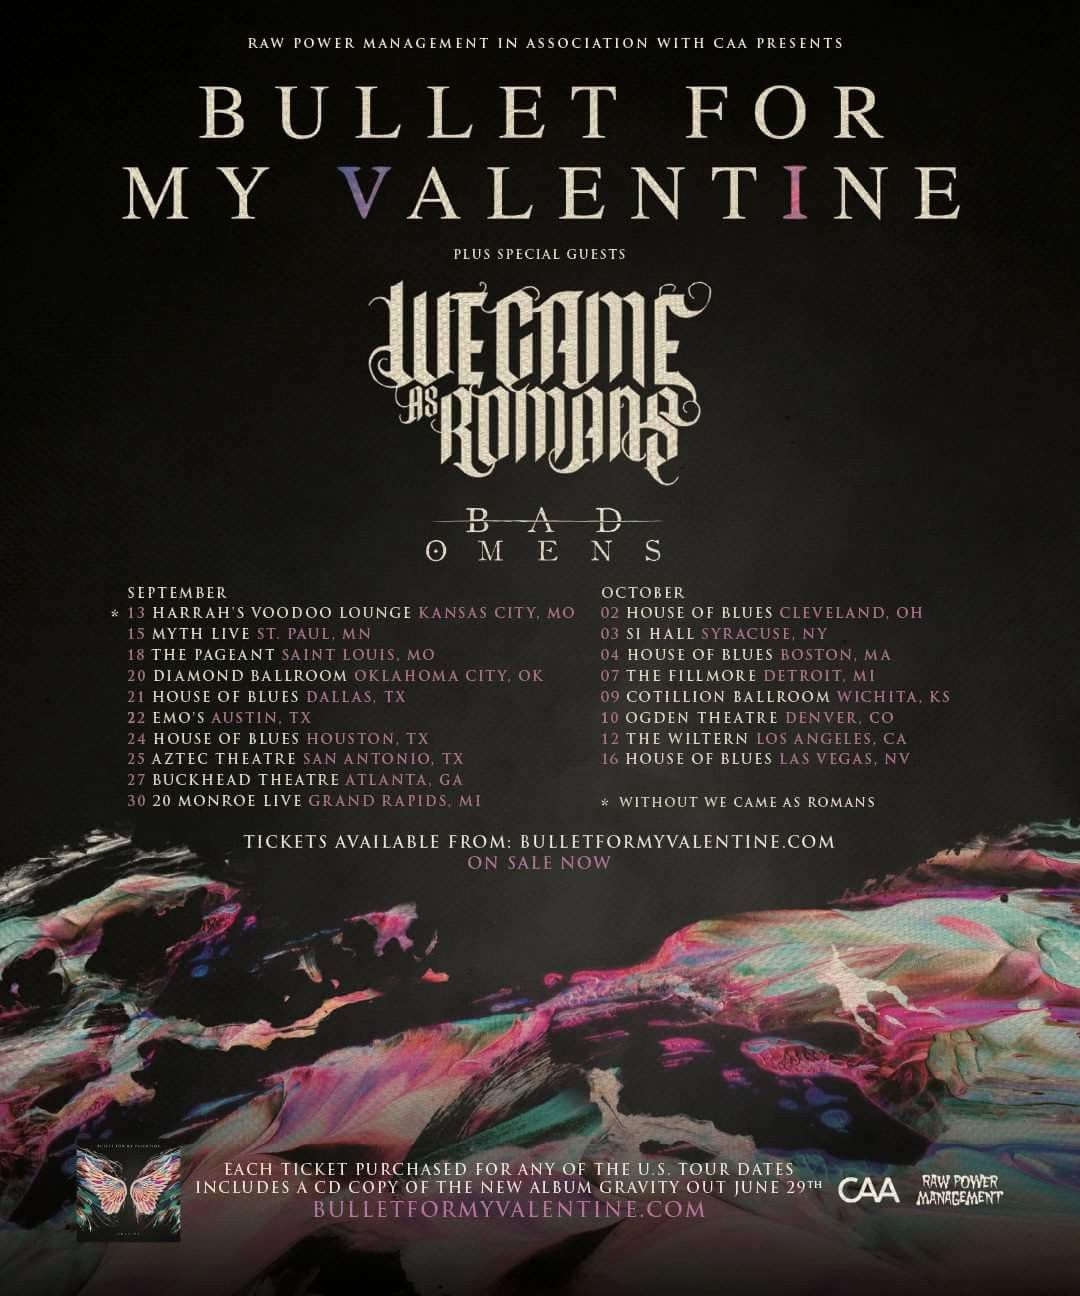 Bfmv 10 02 2018 House Of Blues Cleveland Oh House Of Blues Cleveland Bullet For My Valentine Special Guest